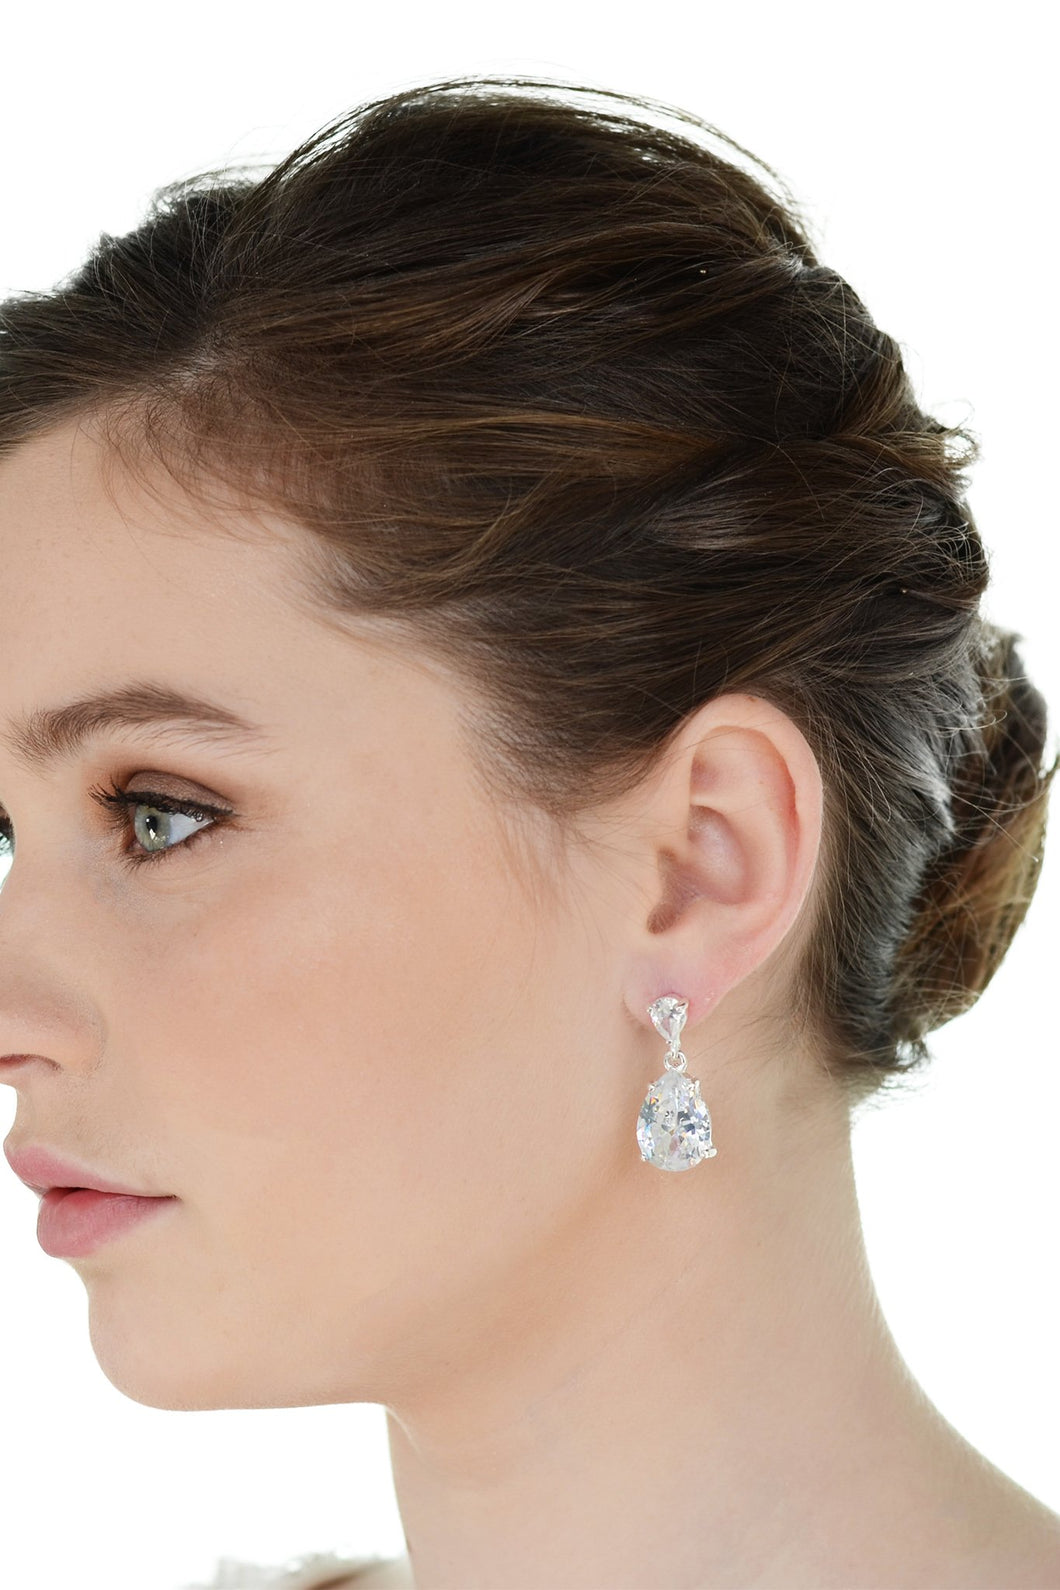 Dark haired model wearing a pear shaped stone earring against a white background.